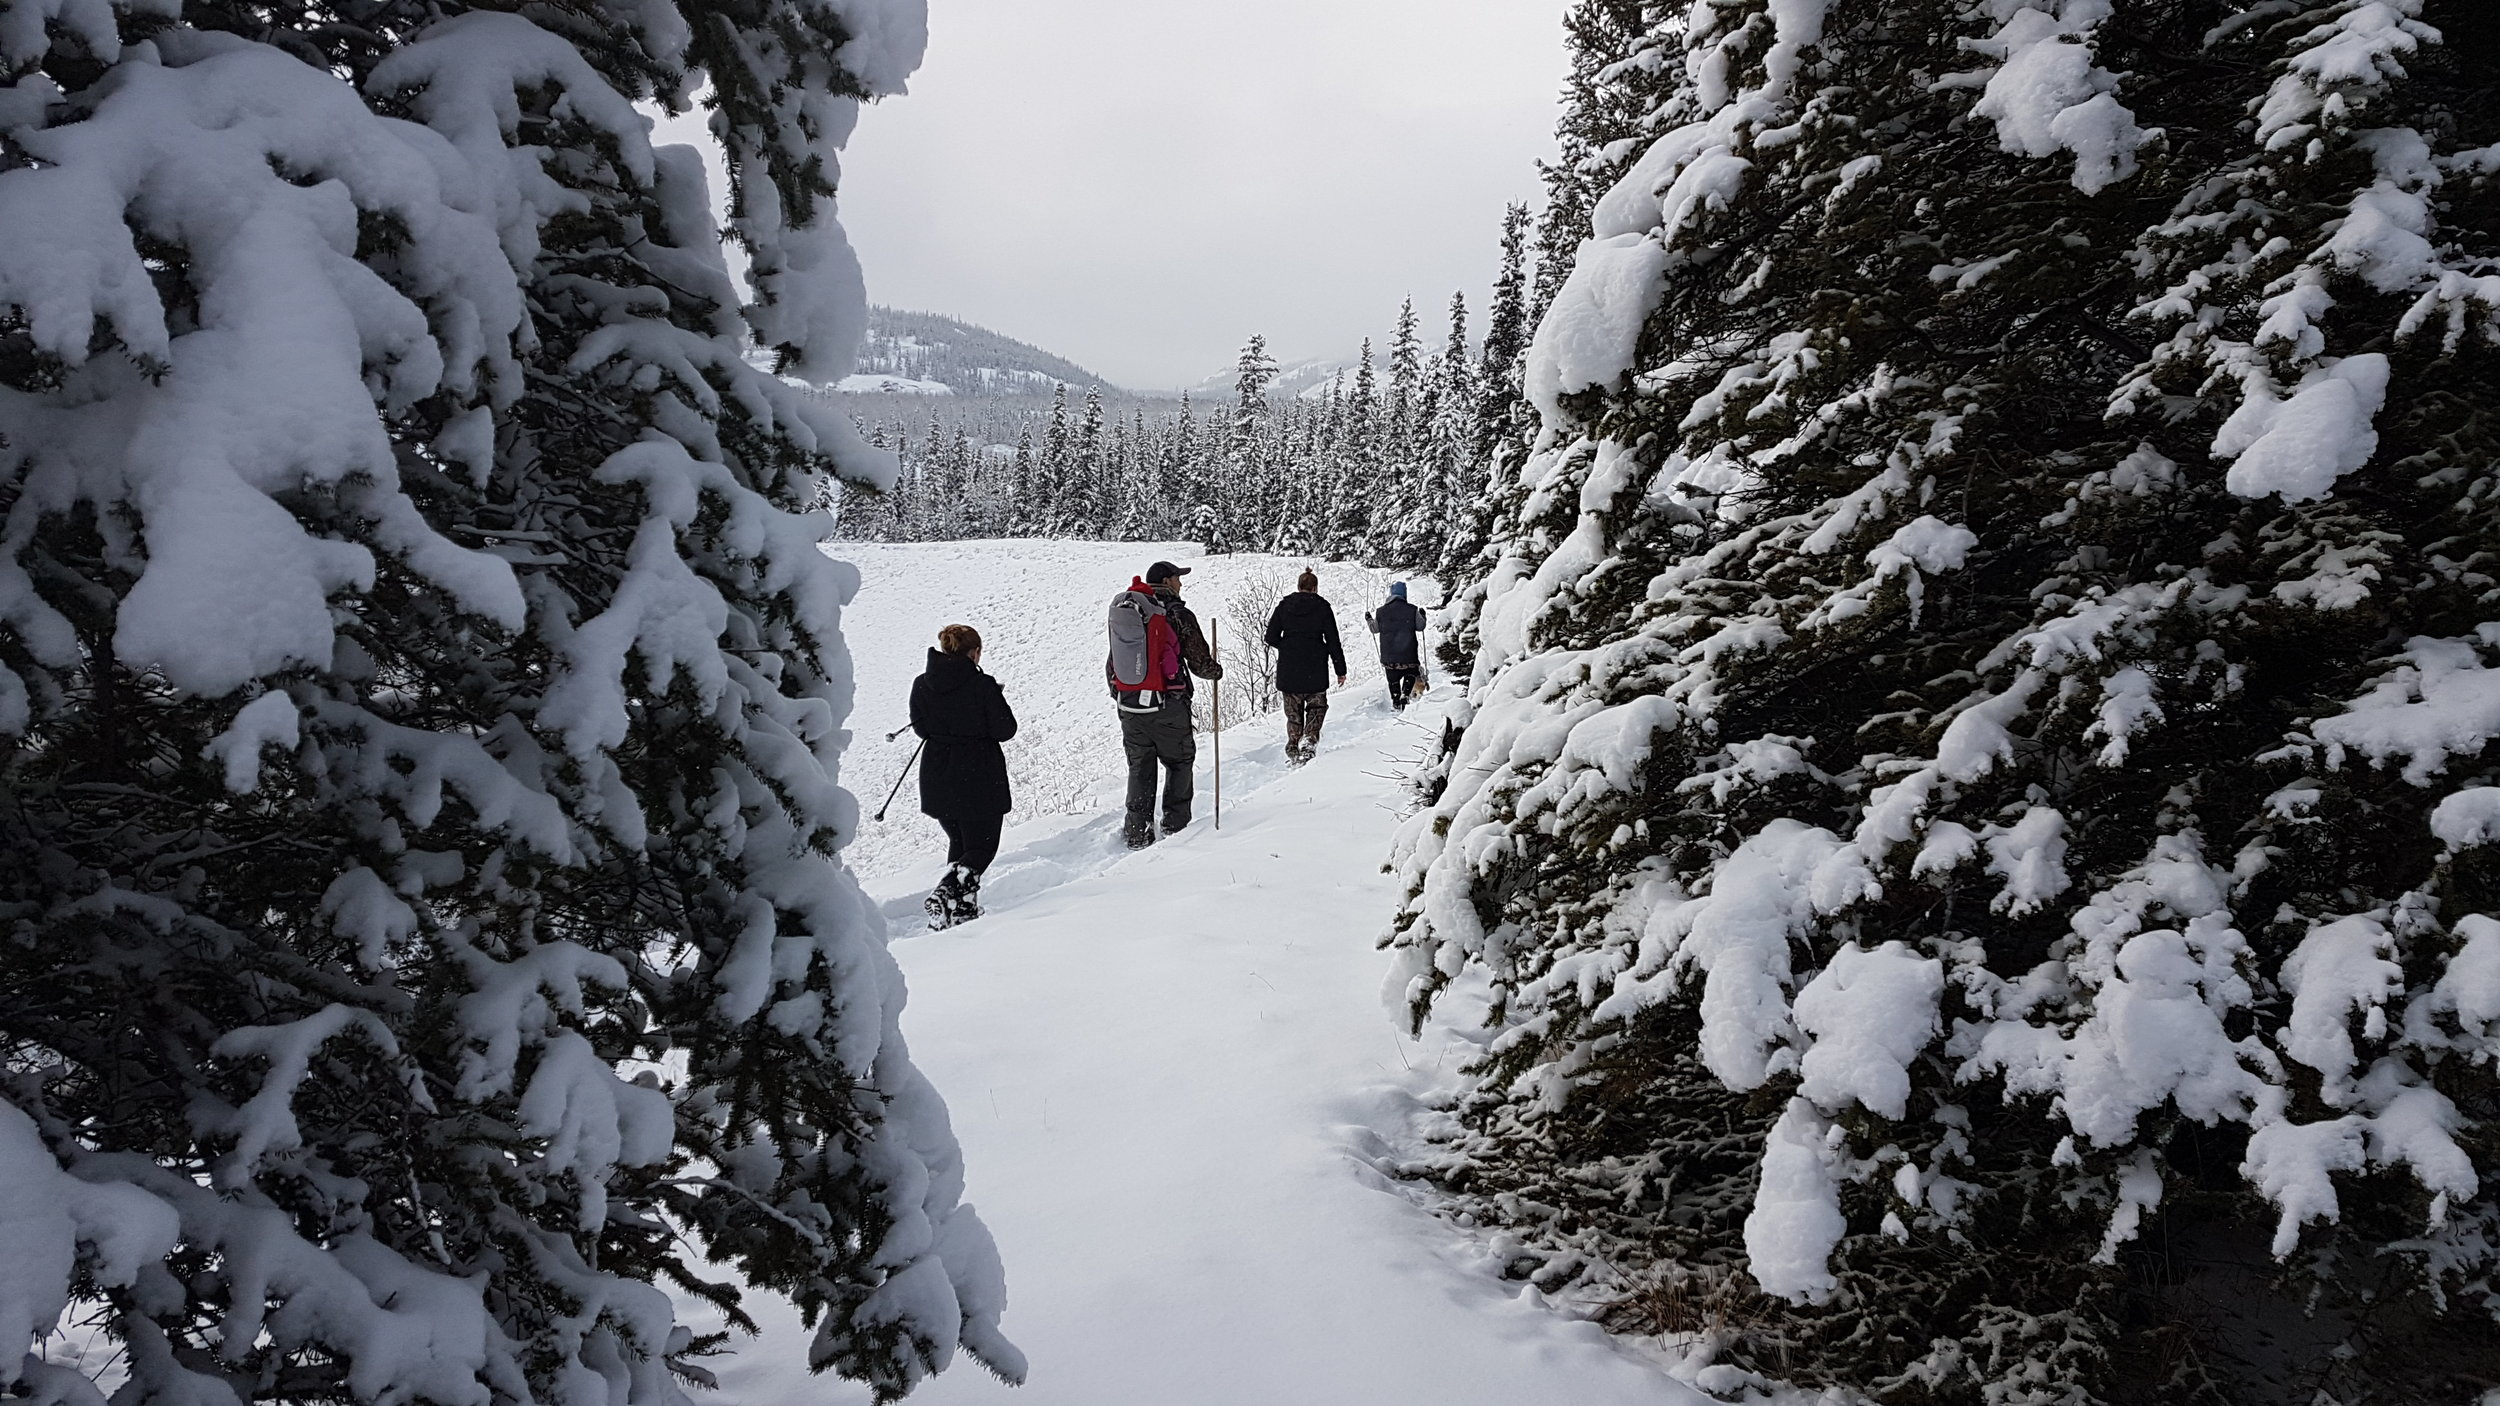 Our small group tours offer an excellent opportunity to experience winter in a new way